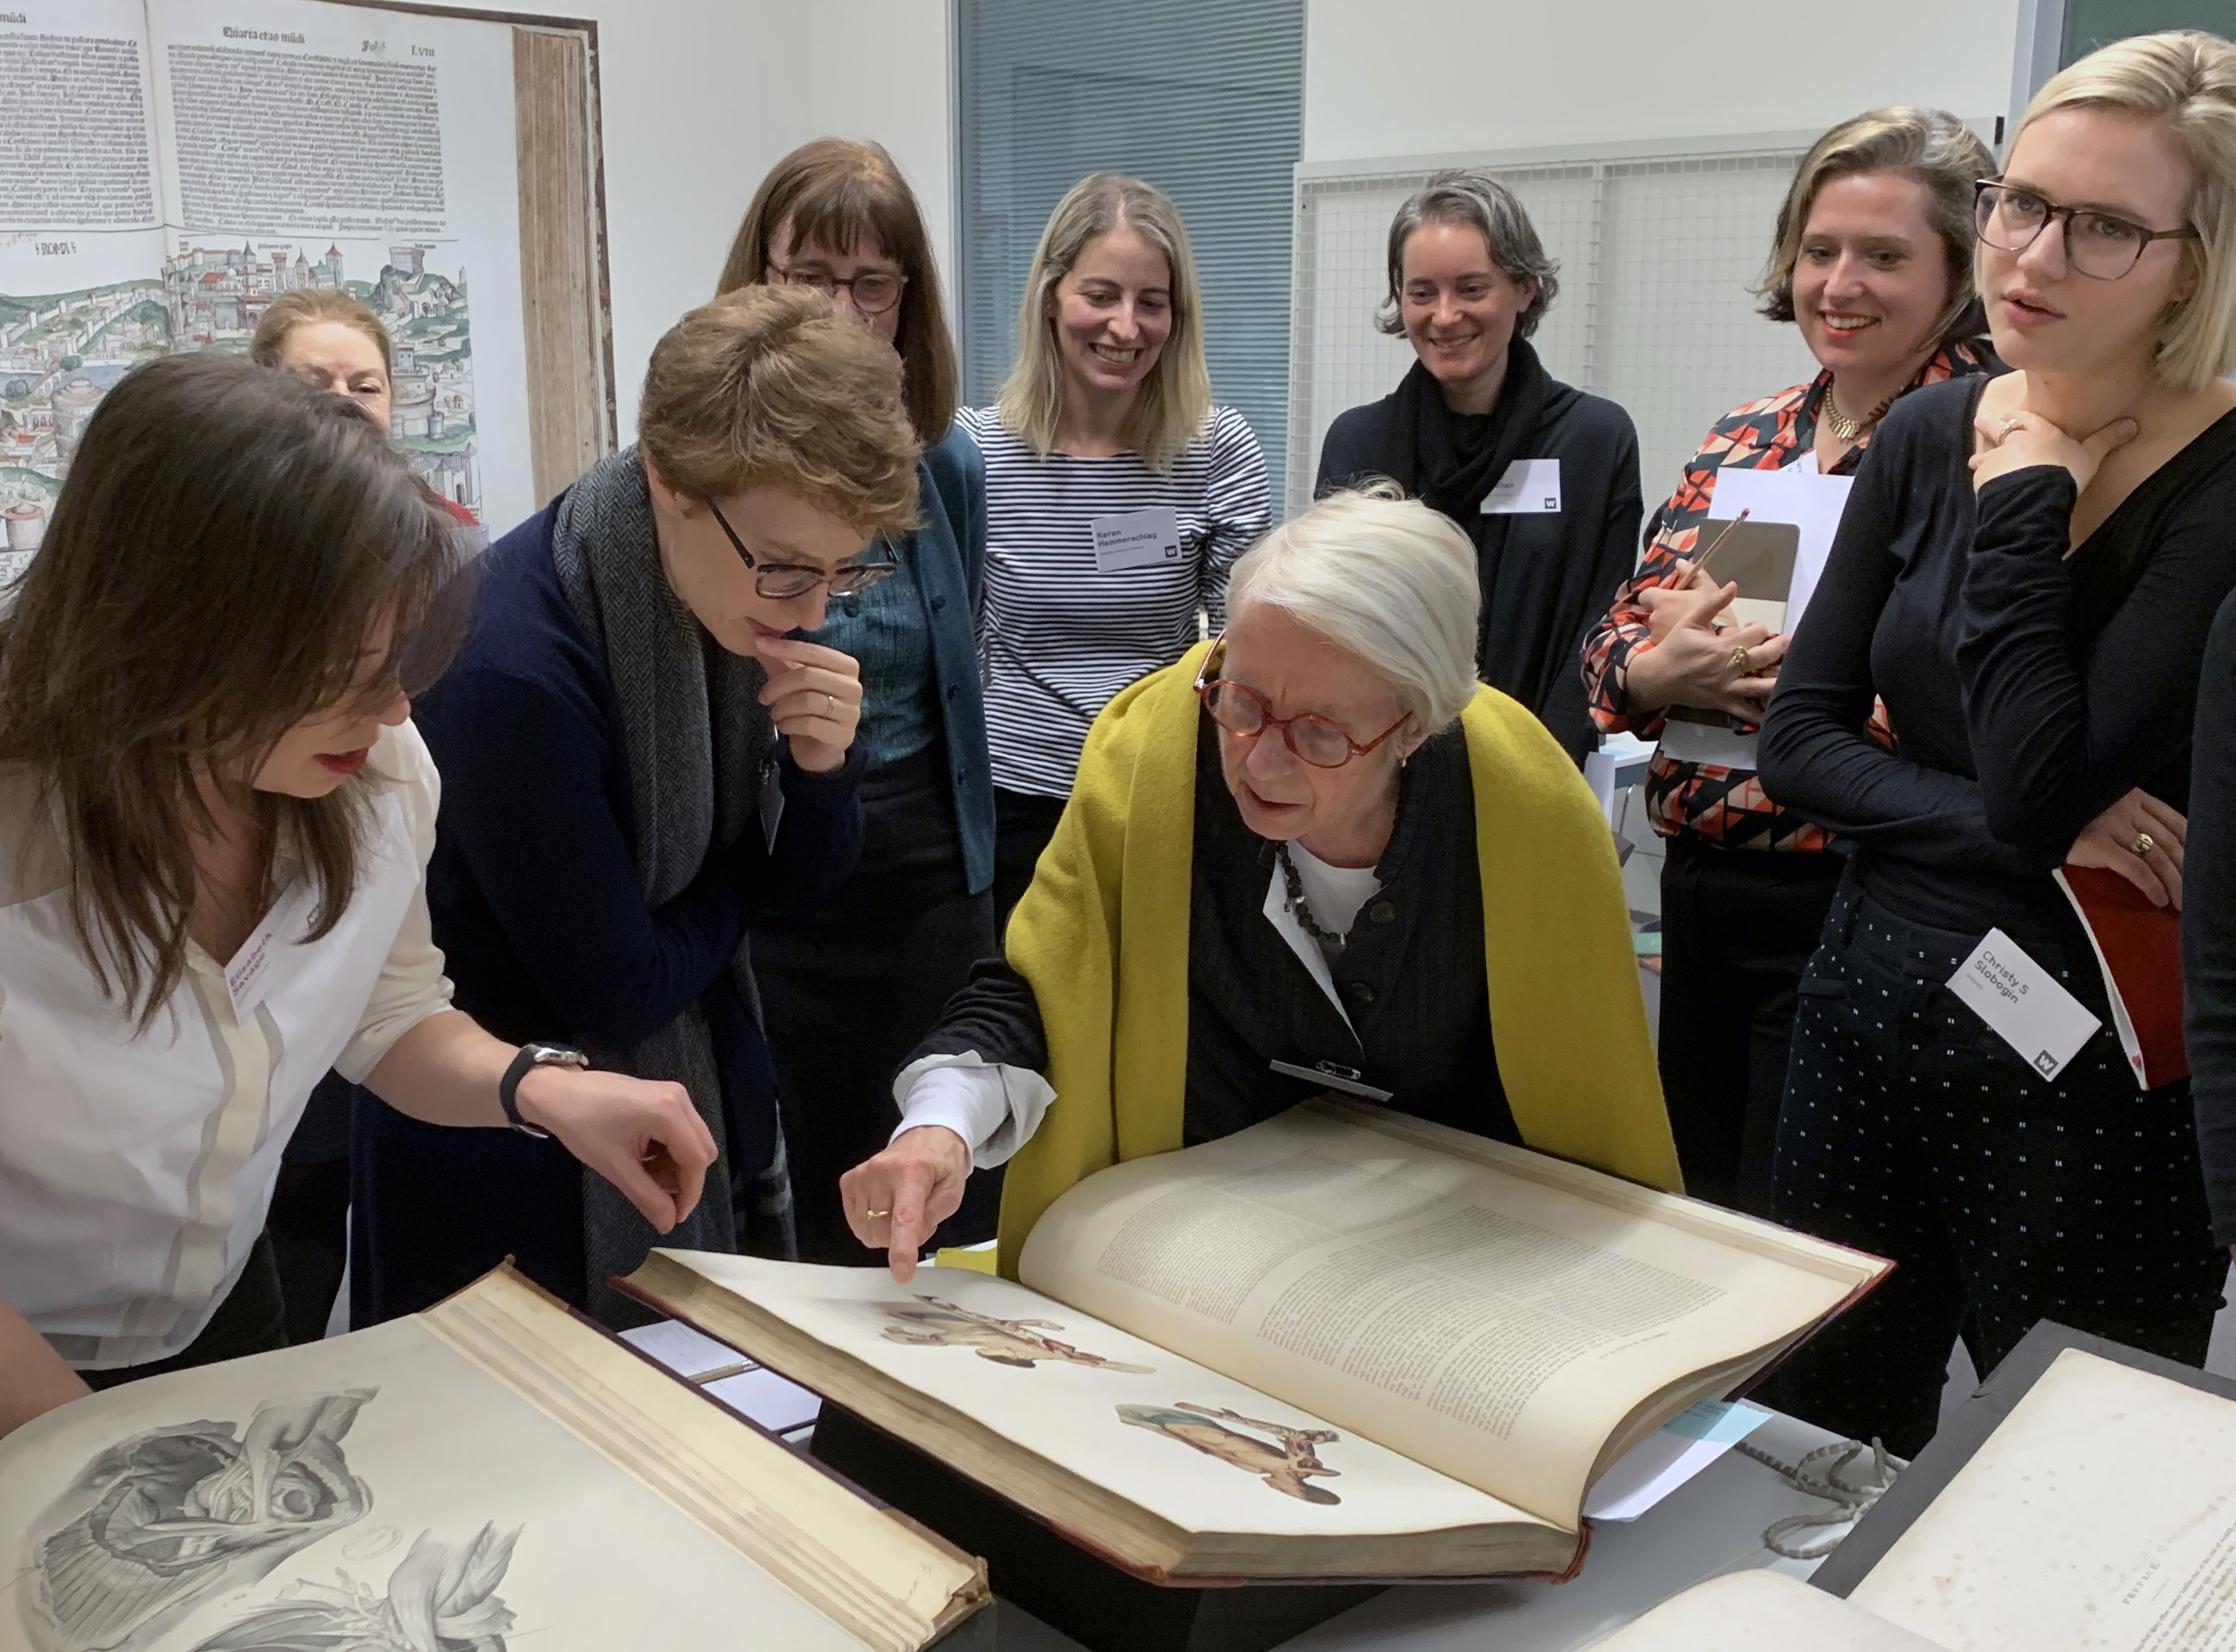 Participants at a workshop considering rare books laid out on a table